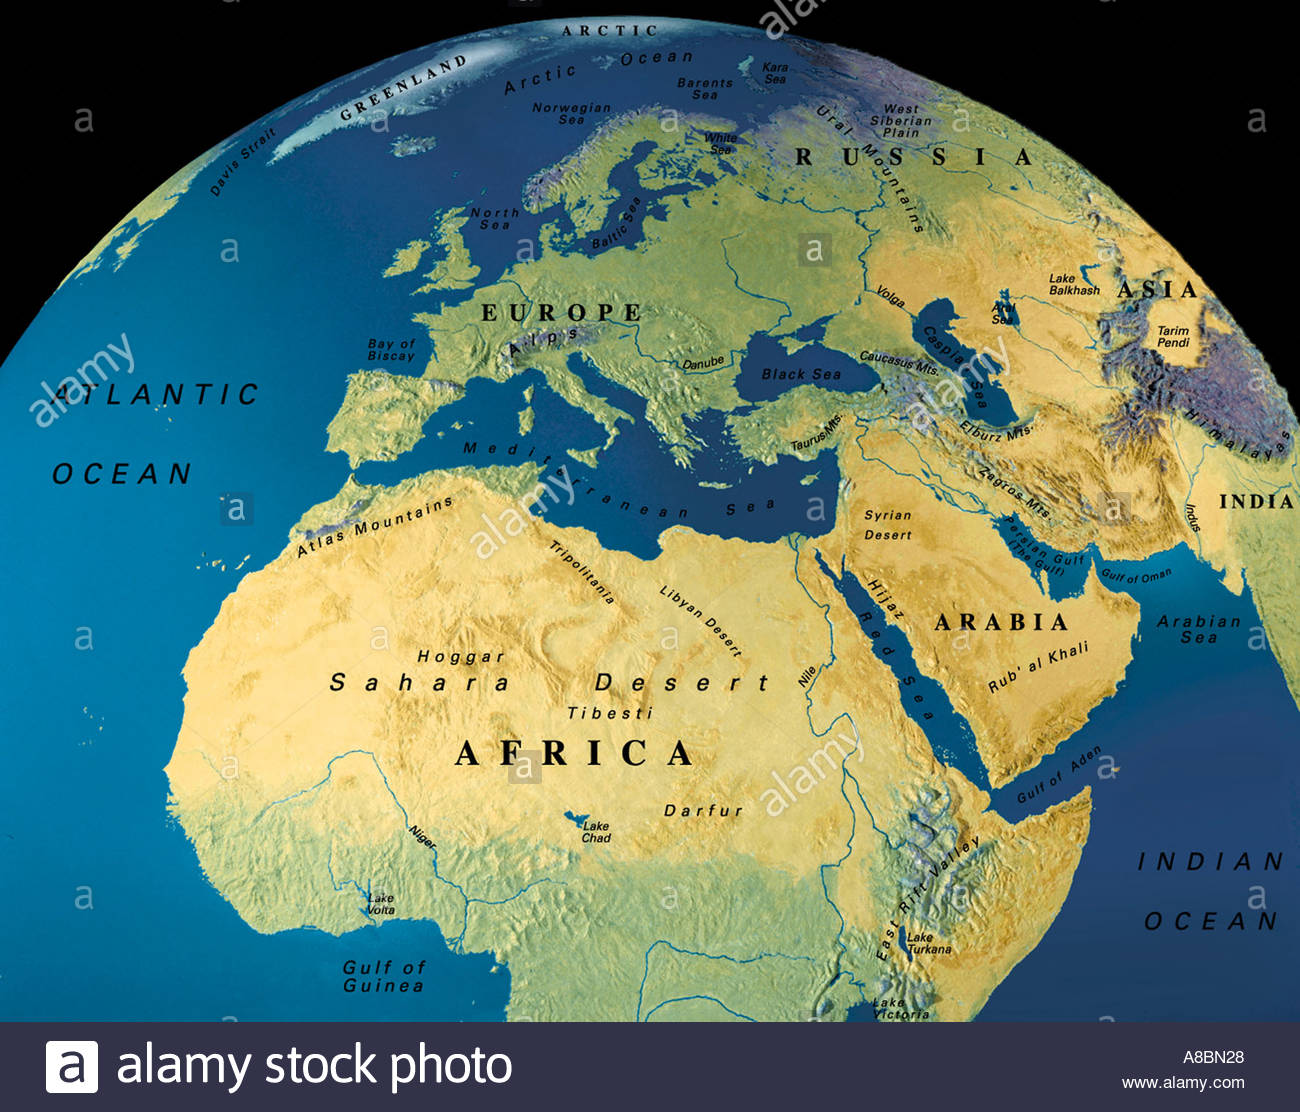 globe map maps Africa Middle East Europe Stock Photo: 3934503 - Alamy